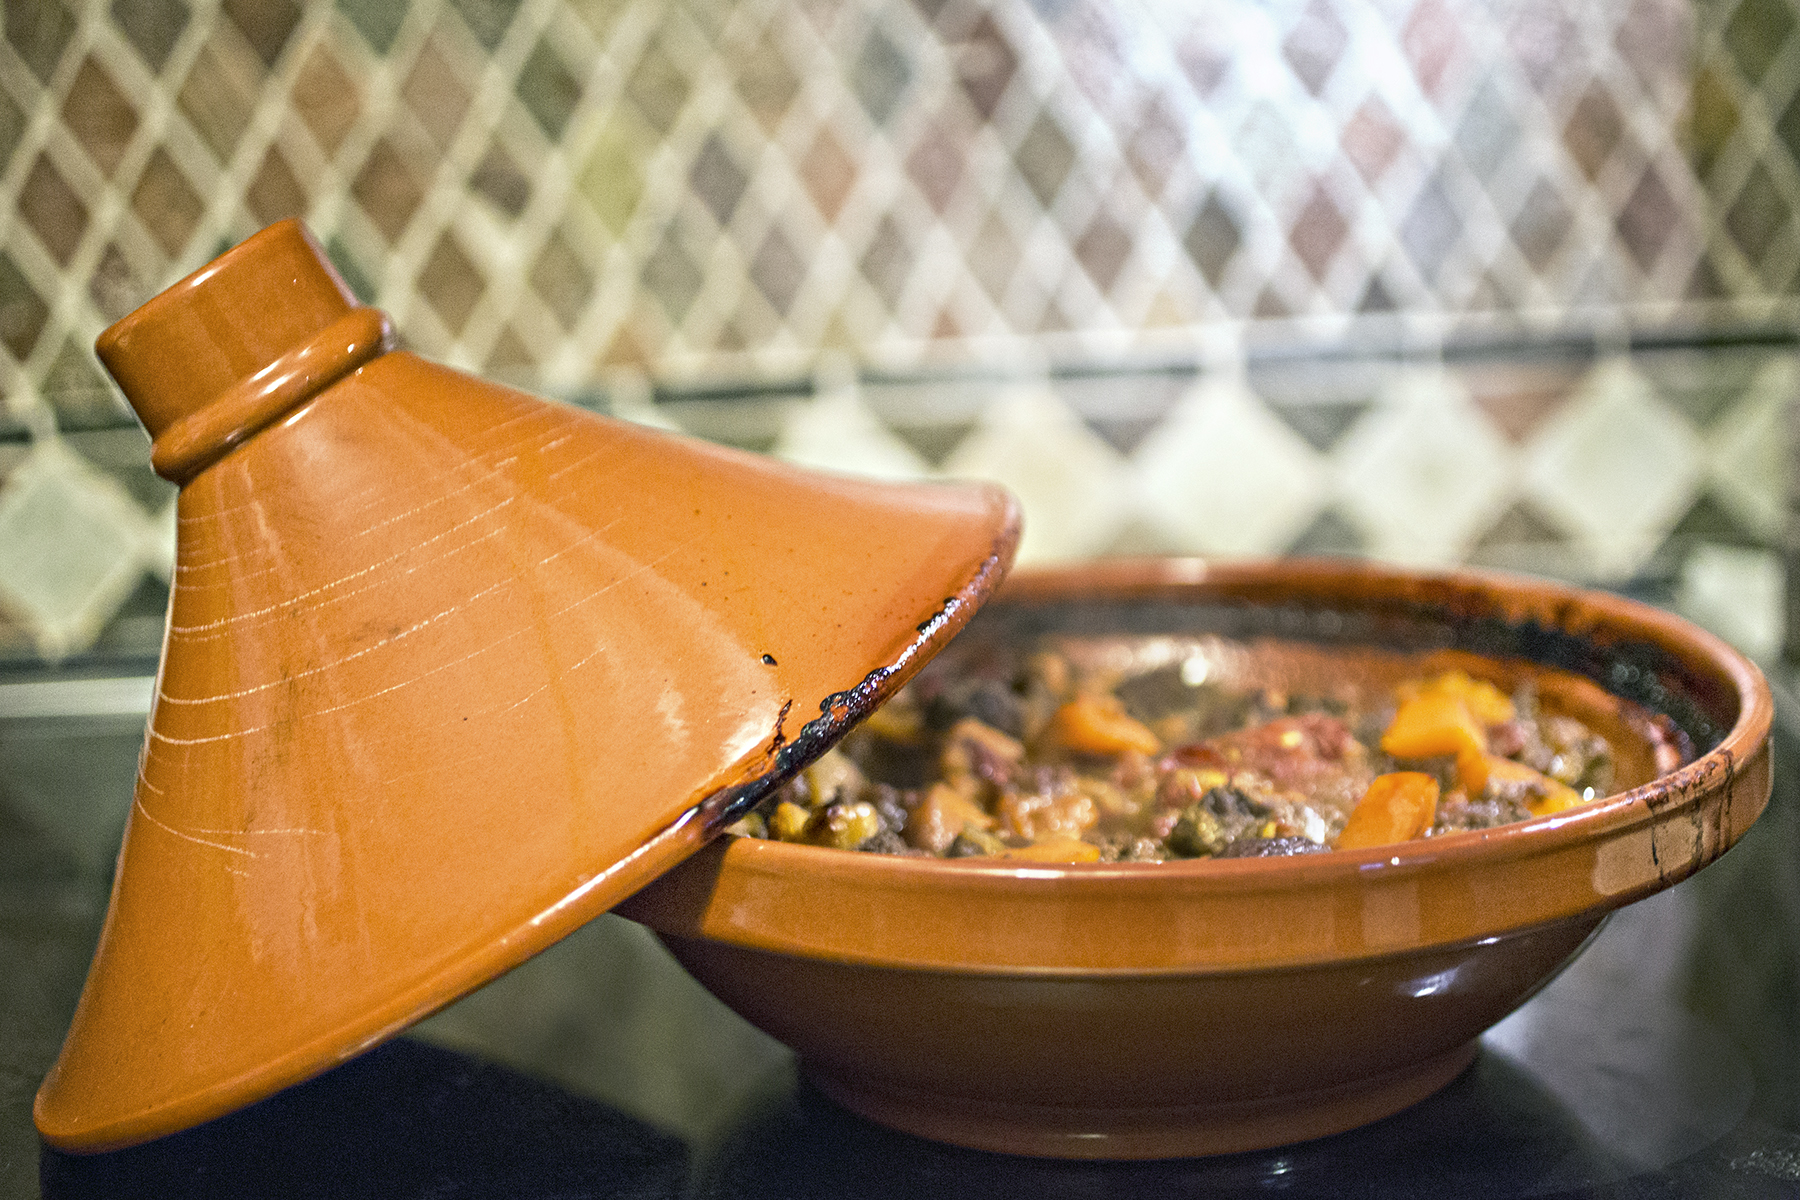 Wild game recipe: Venison tagine with squash and apricotsLaura's Wild ...